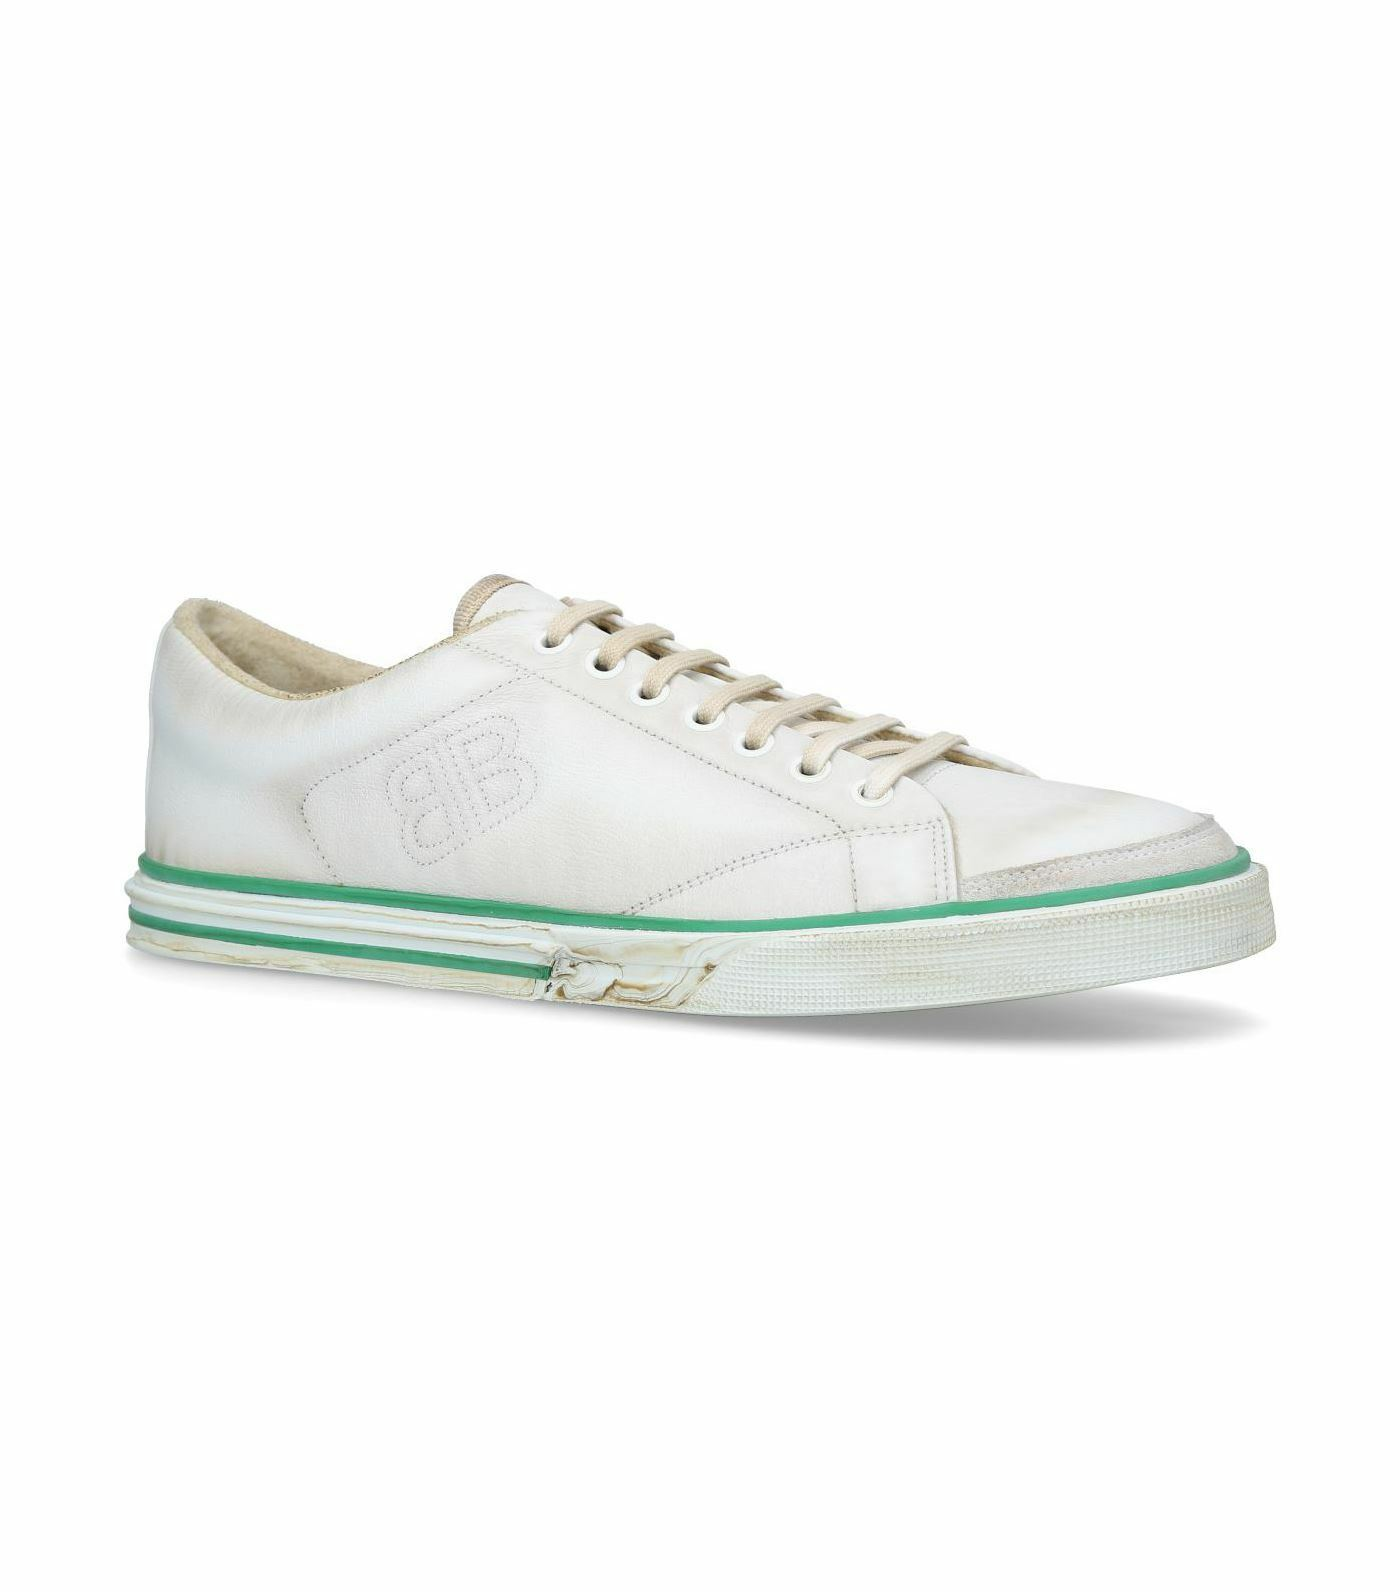 Balenciaga Match low-top calfskin leather kinda distressed trainers White White